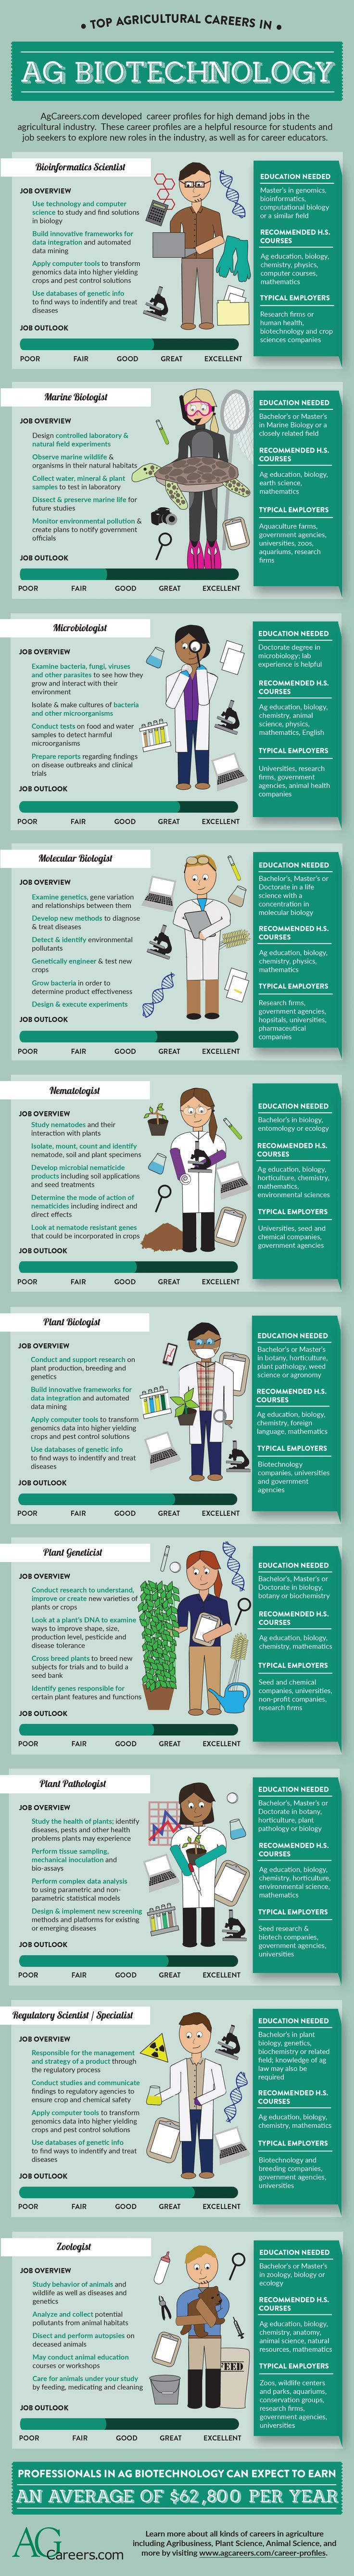 Top Agricultural Careers in Ag Biotechnology u2013